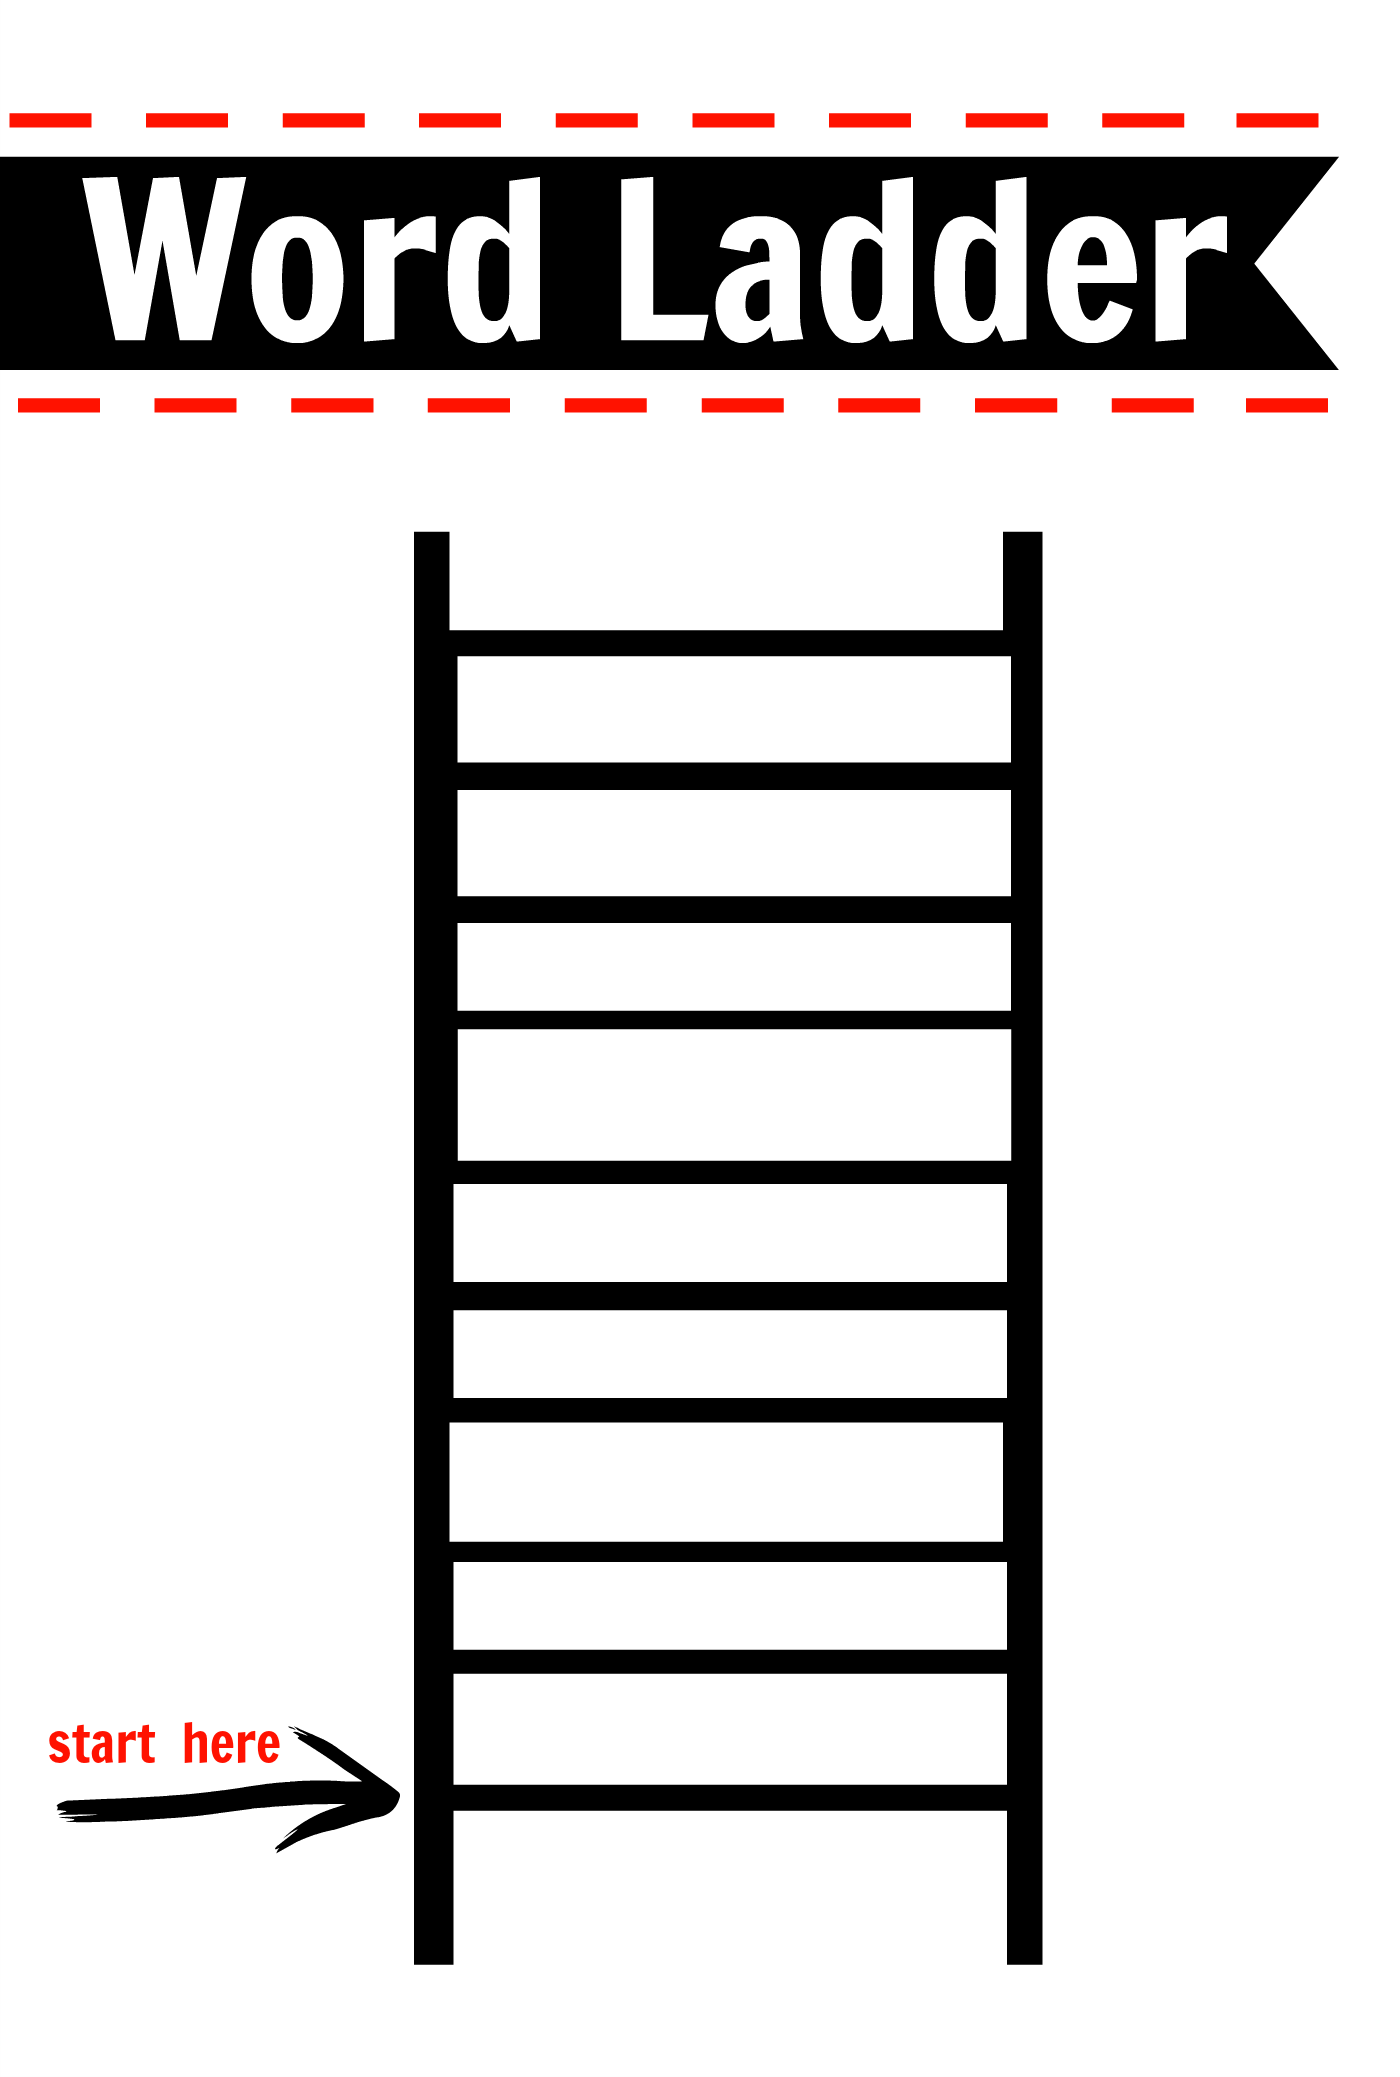 after school activity word ladders printable free - Activity Printables